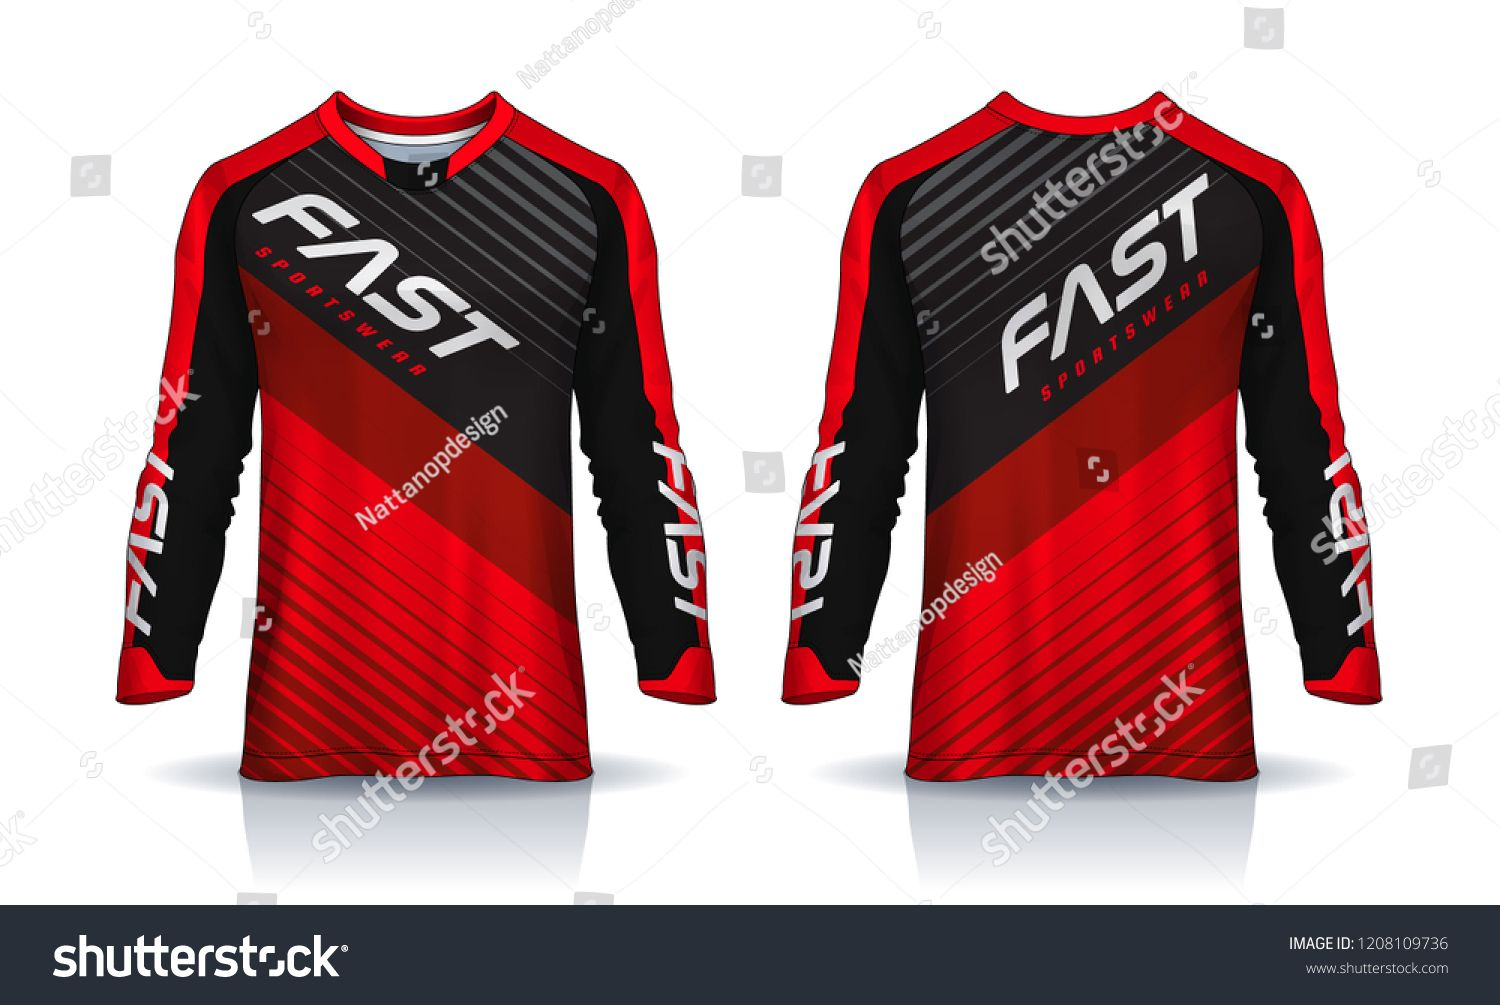 Download T Shirt Sport Design Template Long Sleeve Soccer Jersey Mockup For Football Club Uniform Front And Back Vie Sports Tshirt Designs Sports Design Sport T Shirt